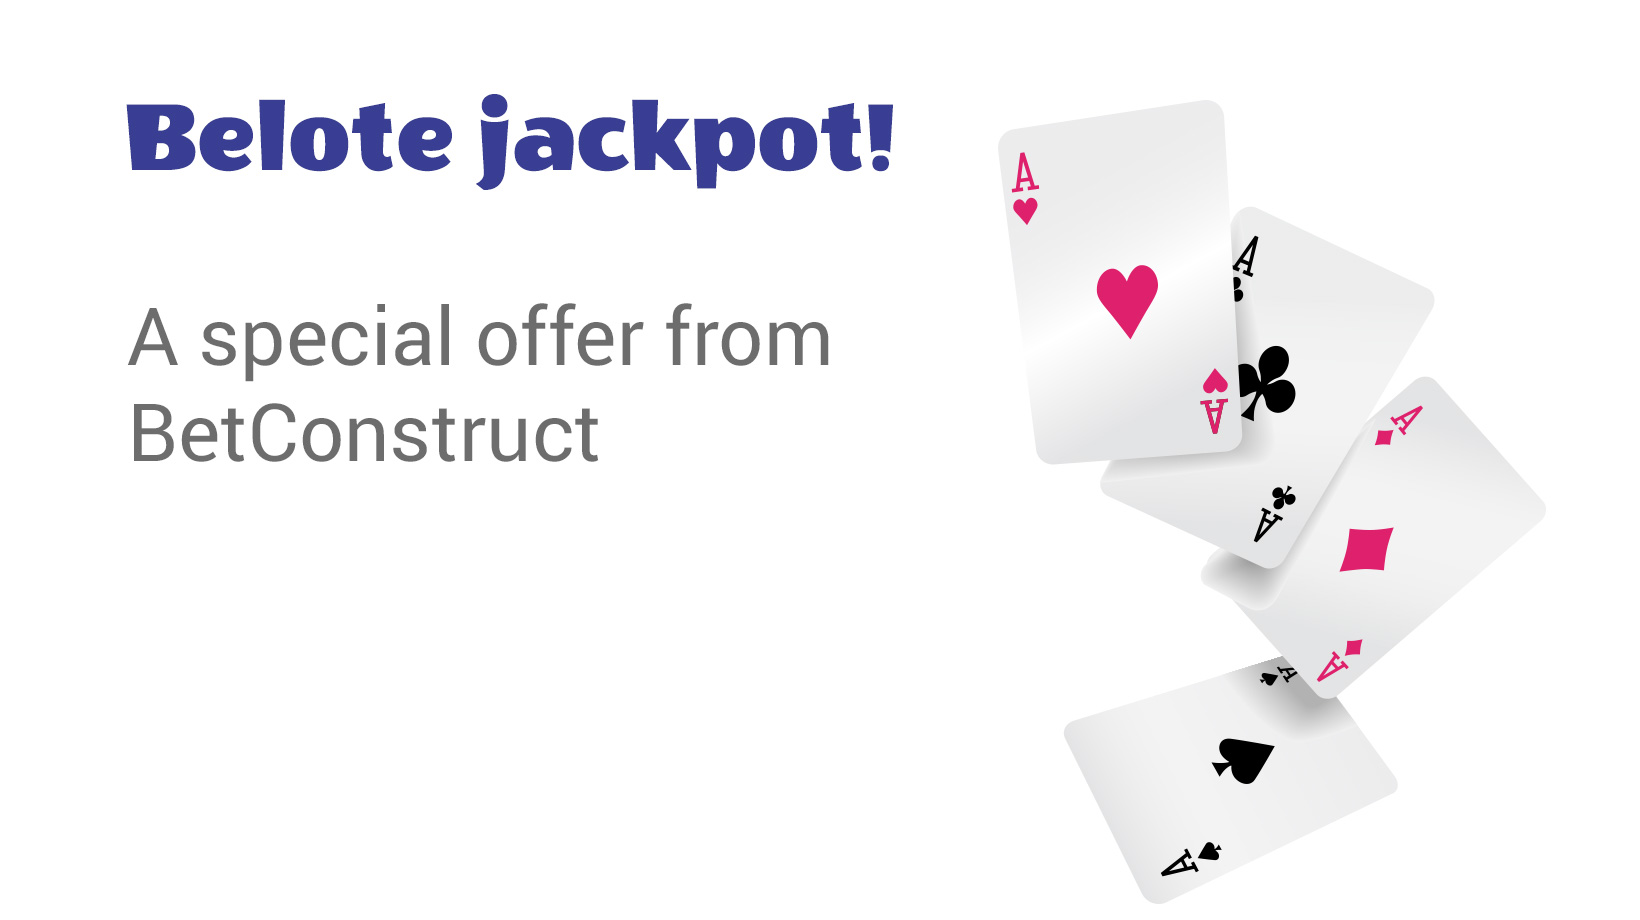 Belote Jackpot A special offer from BetConstruct